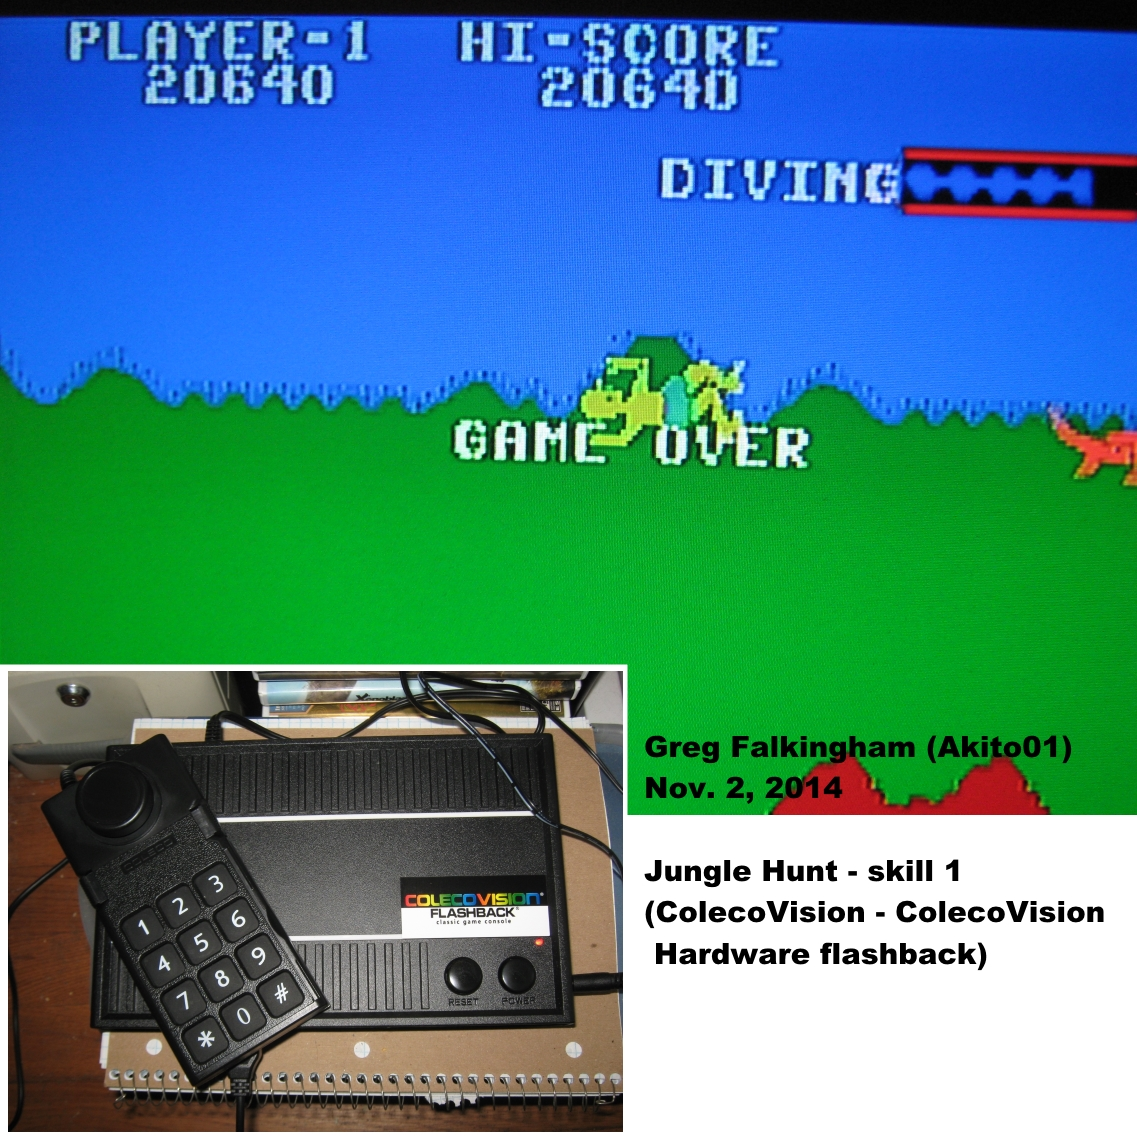 Akito01: Jungle Hunt (Colecovision Flashback) 20,640 points on 2014-11-02 16:06:04